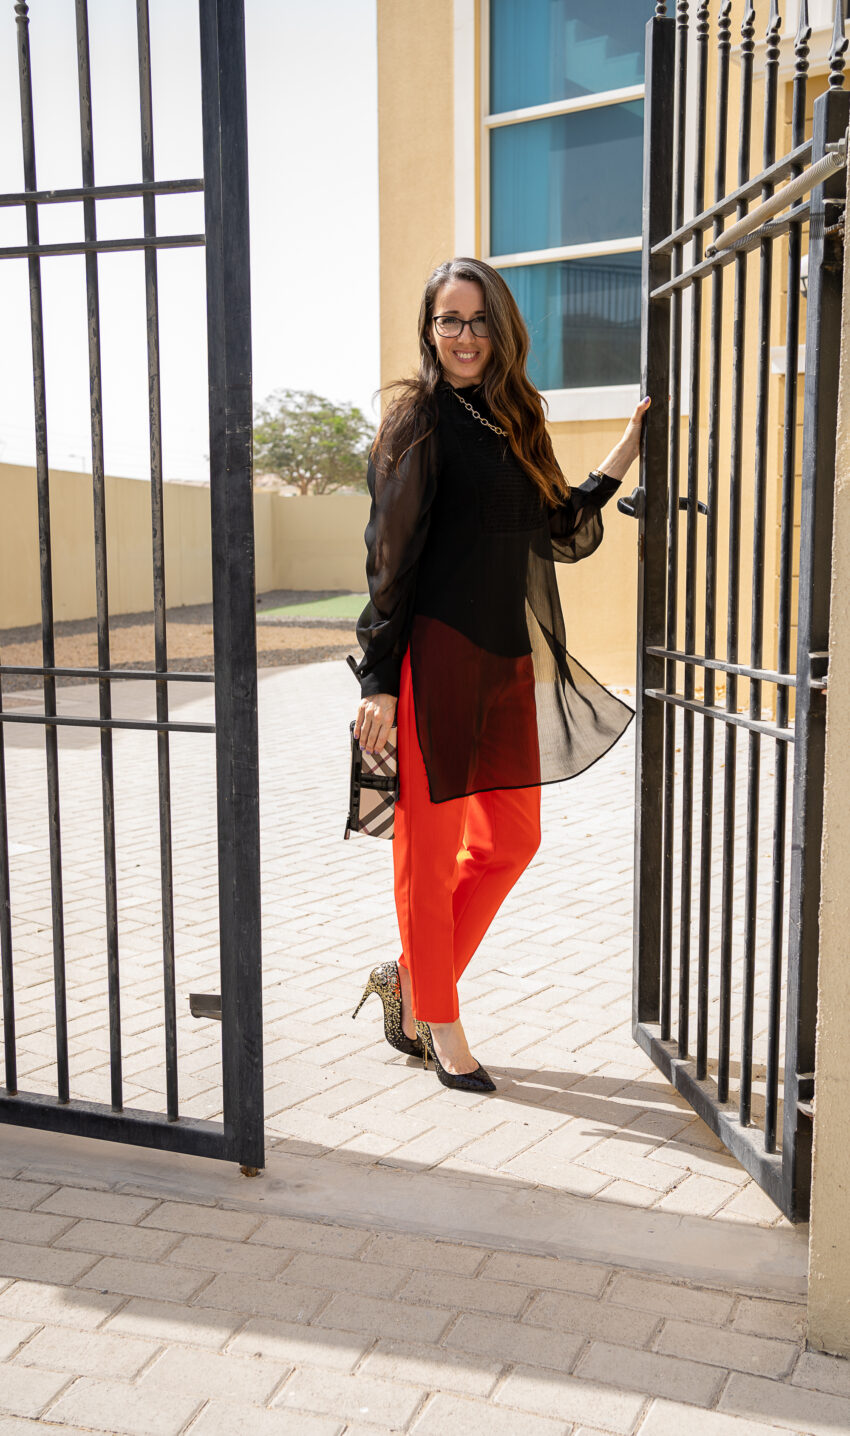 Method39, method to style, my style, red trousers, black blouse, sequined heels, street style, mom style, over 40 style, mompreneur, night out, dressed up